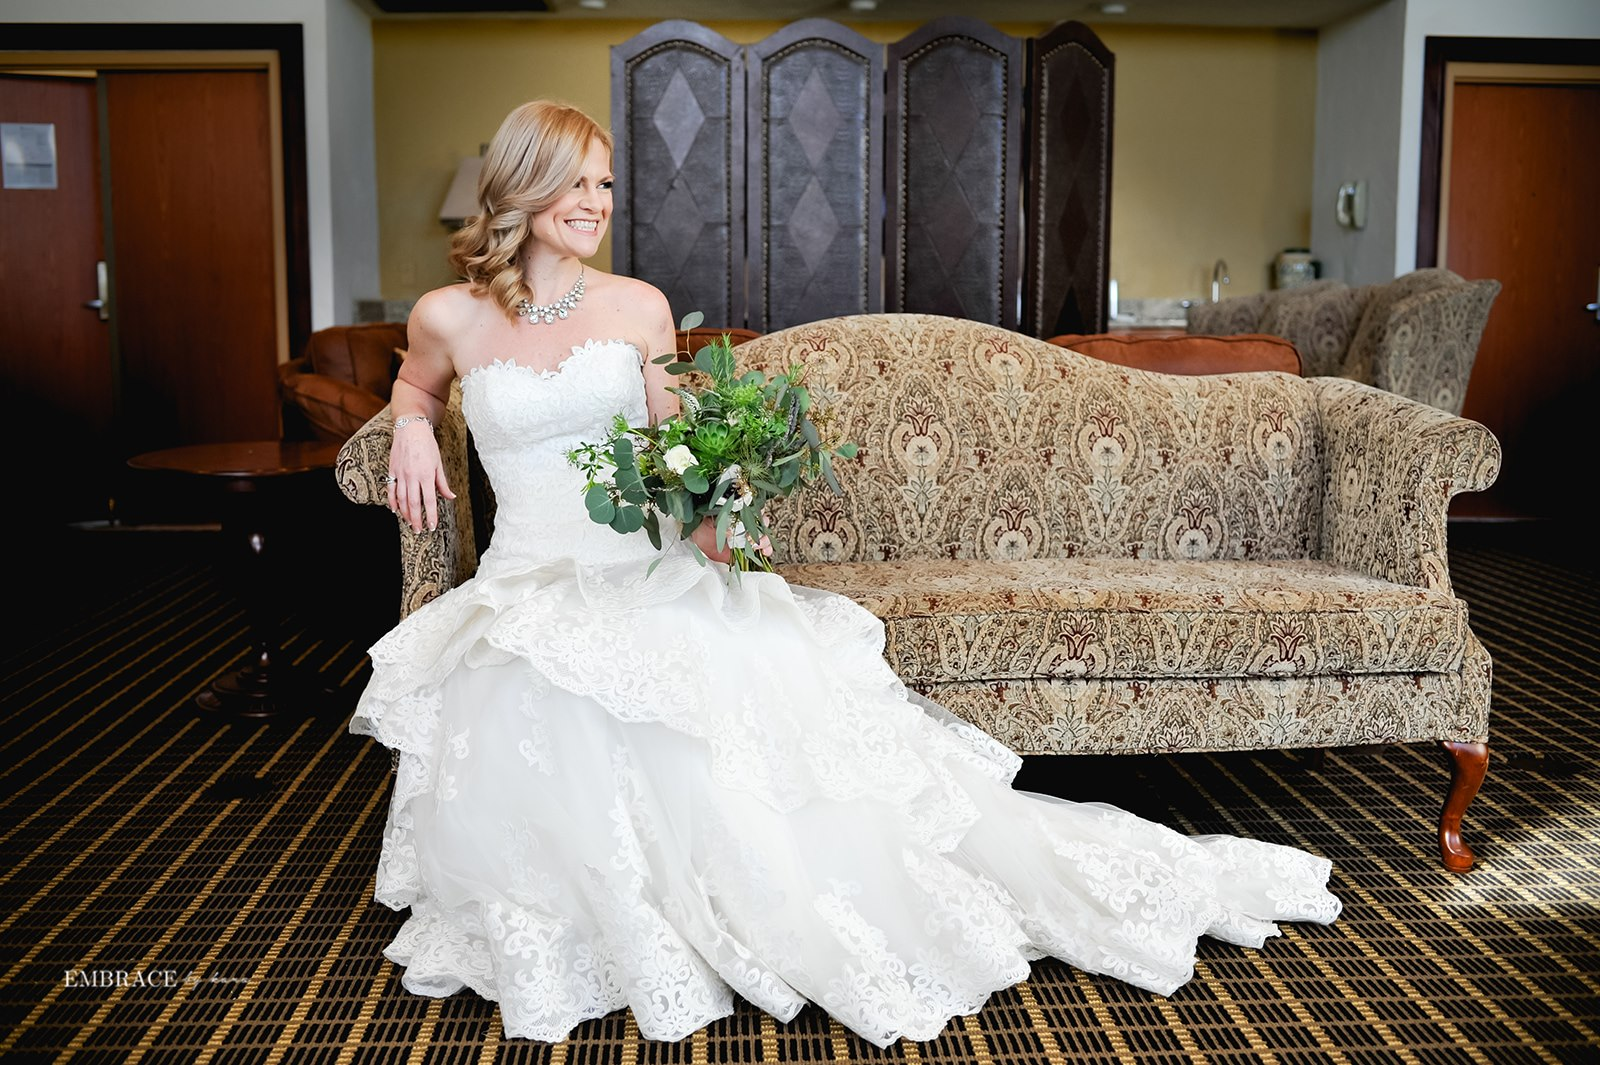 Bride lounging on couch with bouquet